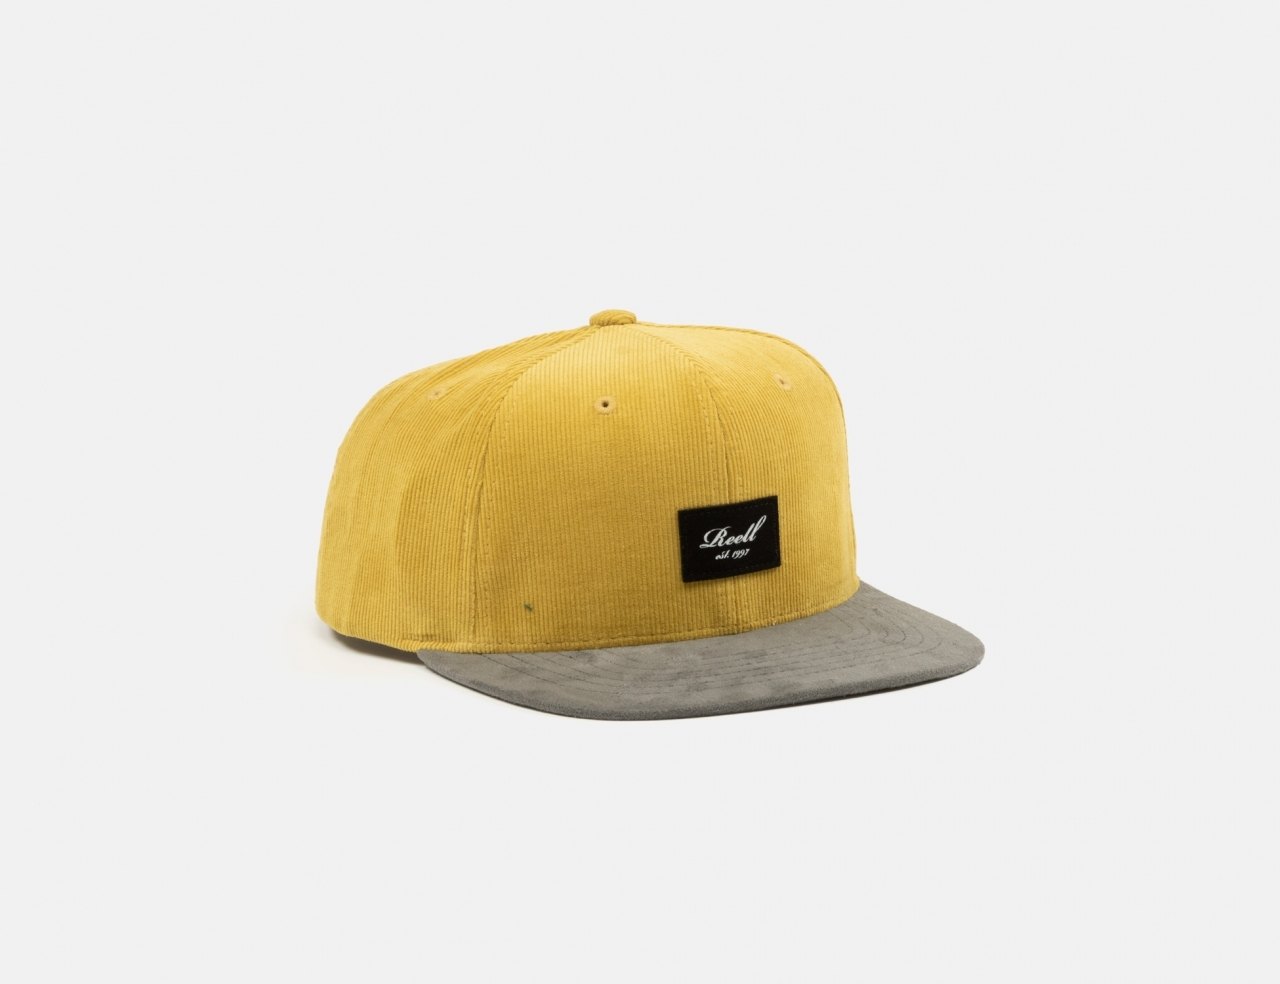 Reell Jeans Suede Cap - Yellow Brown Ribcord